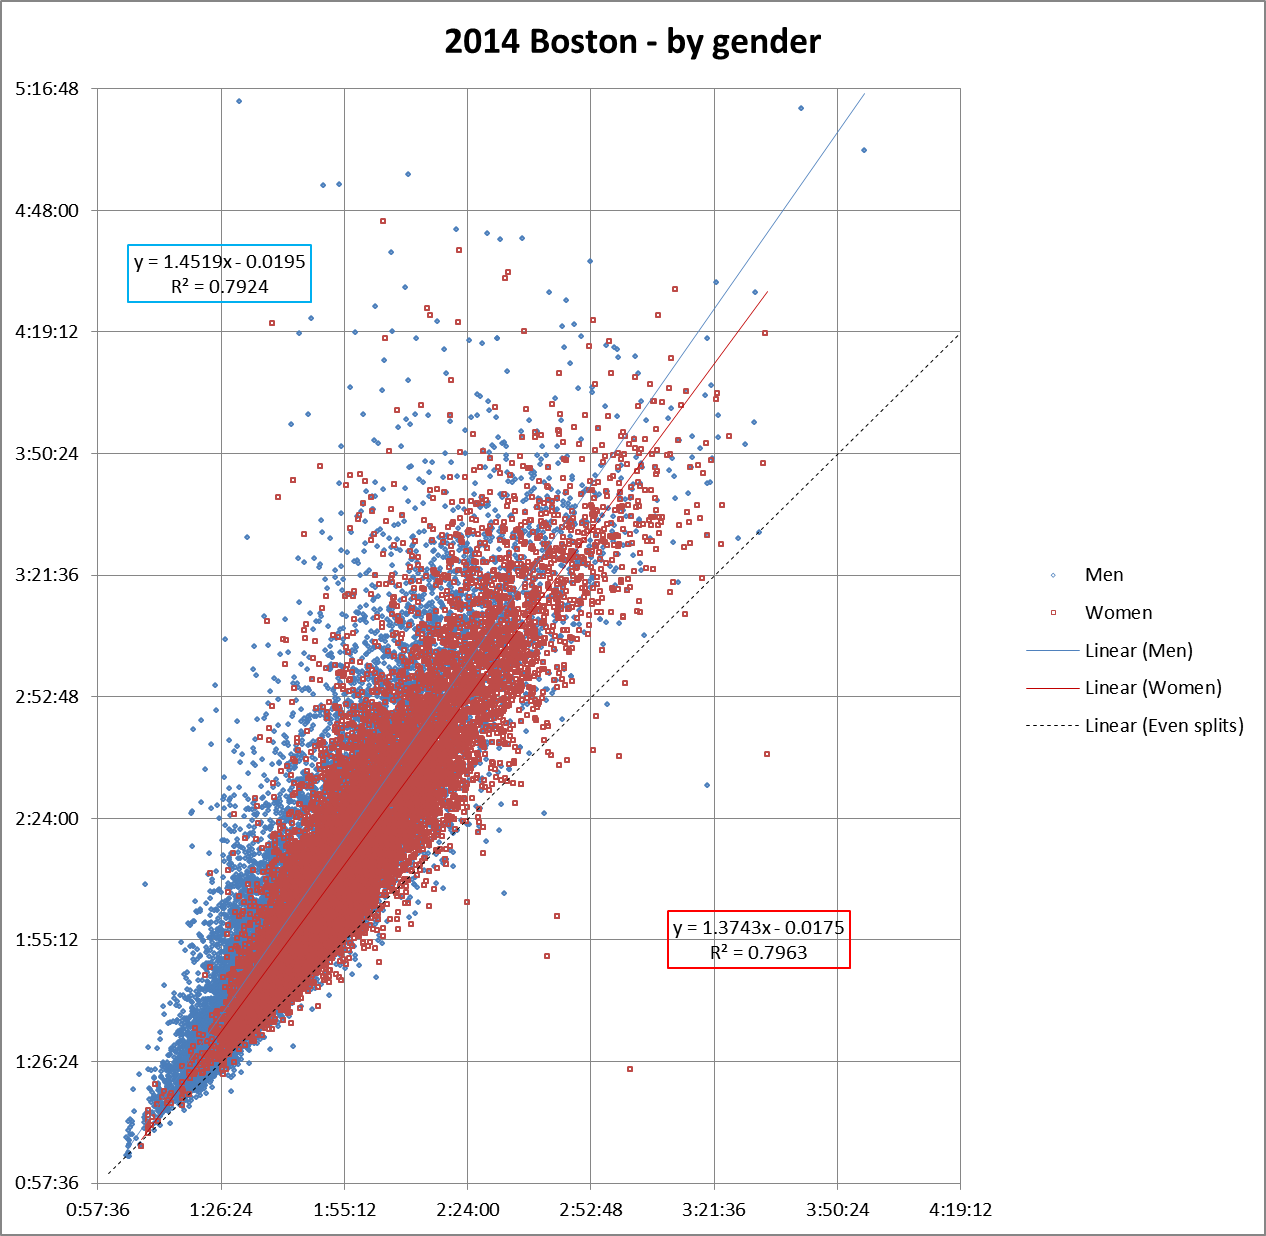 Boston 2014 gender